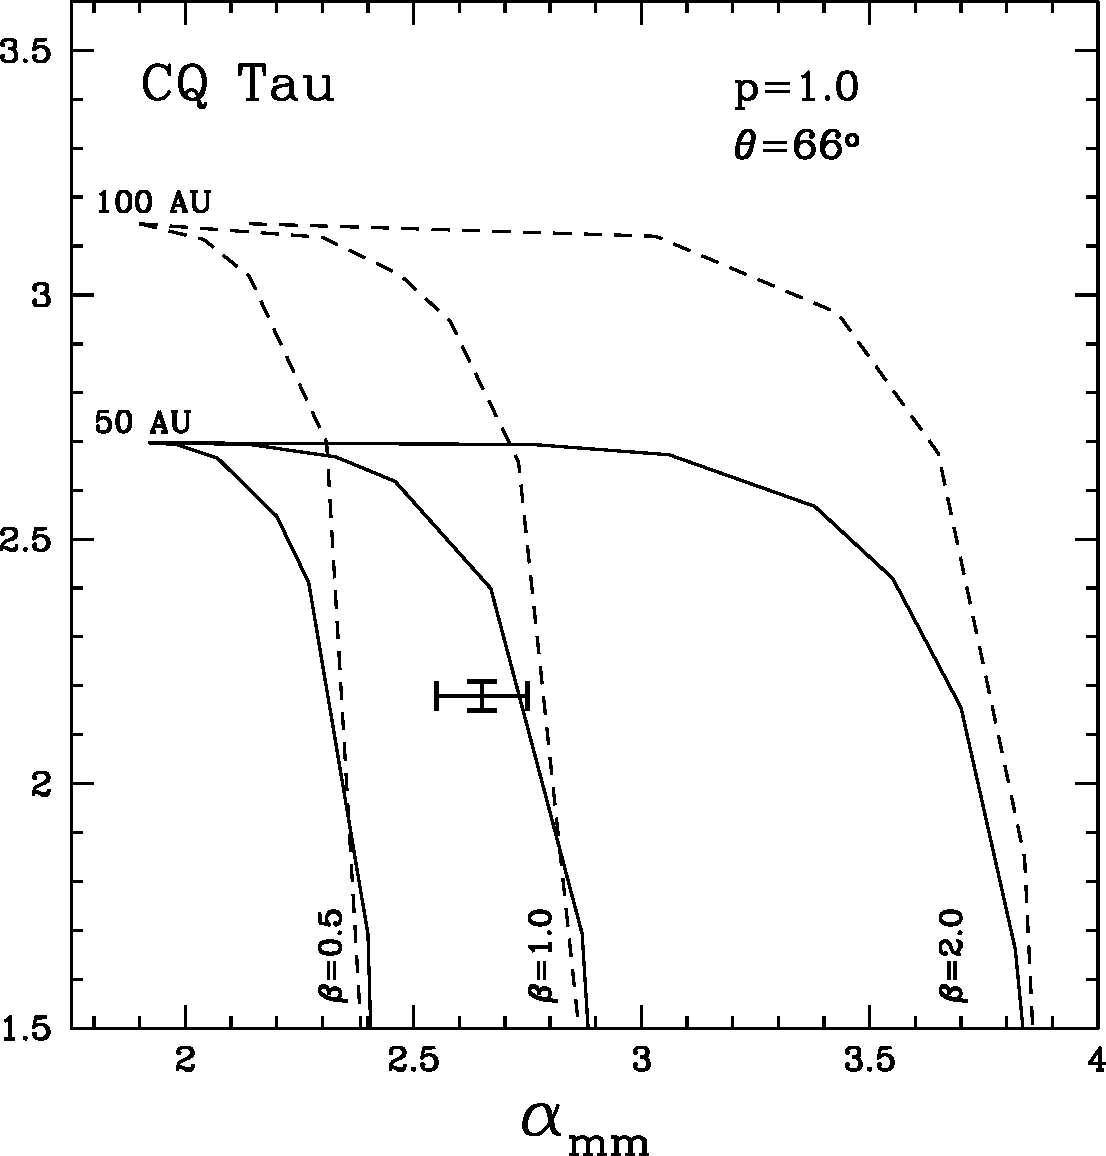 Fig. 6.— Same as Fig.3 for CQ Tau. The stellar parameters are T⋆=7500 K, L⋆=5 L⊙, M⋆=1.5 M⊙, D=100 pc. The inclination angle is θ = 66 o (Natta & Whitney 2001).